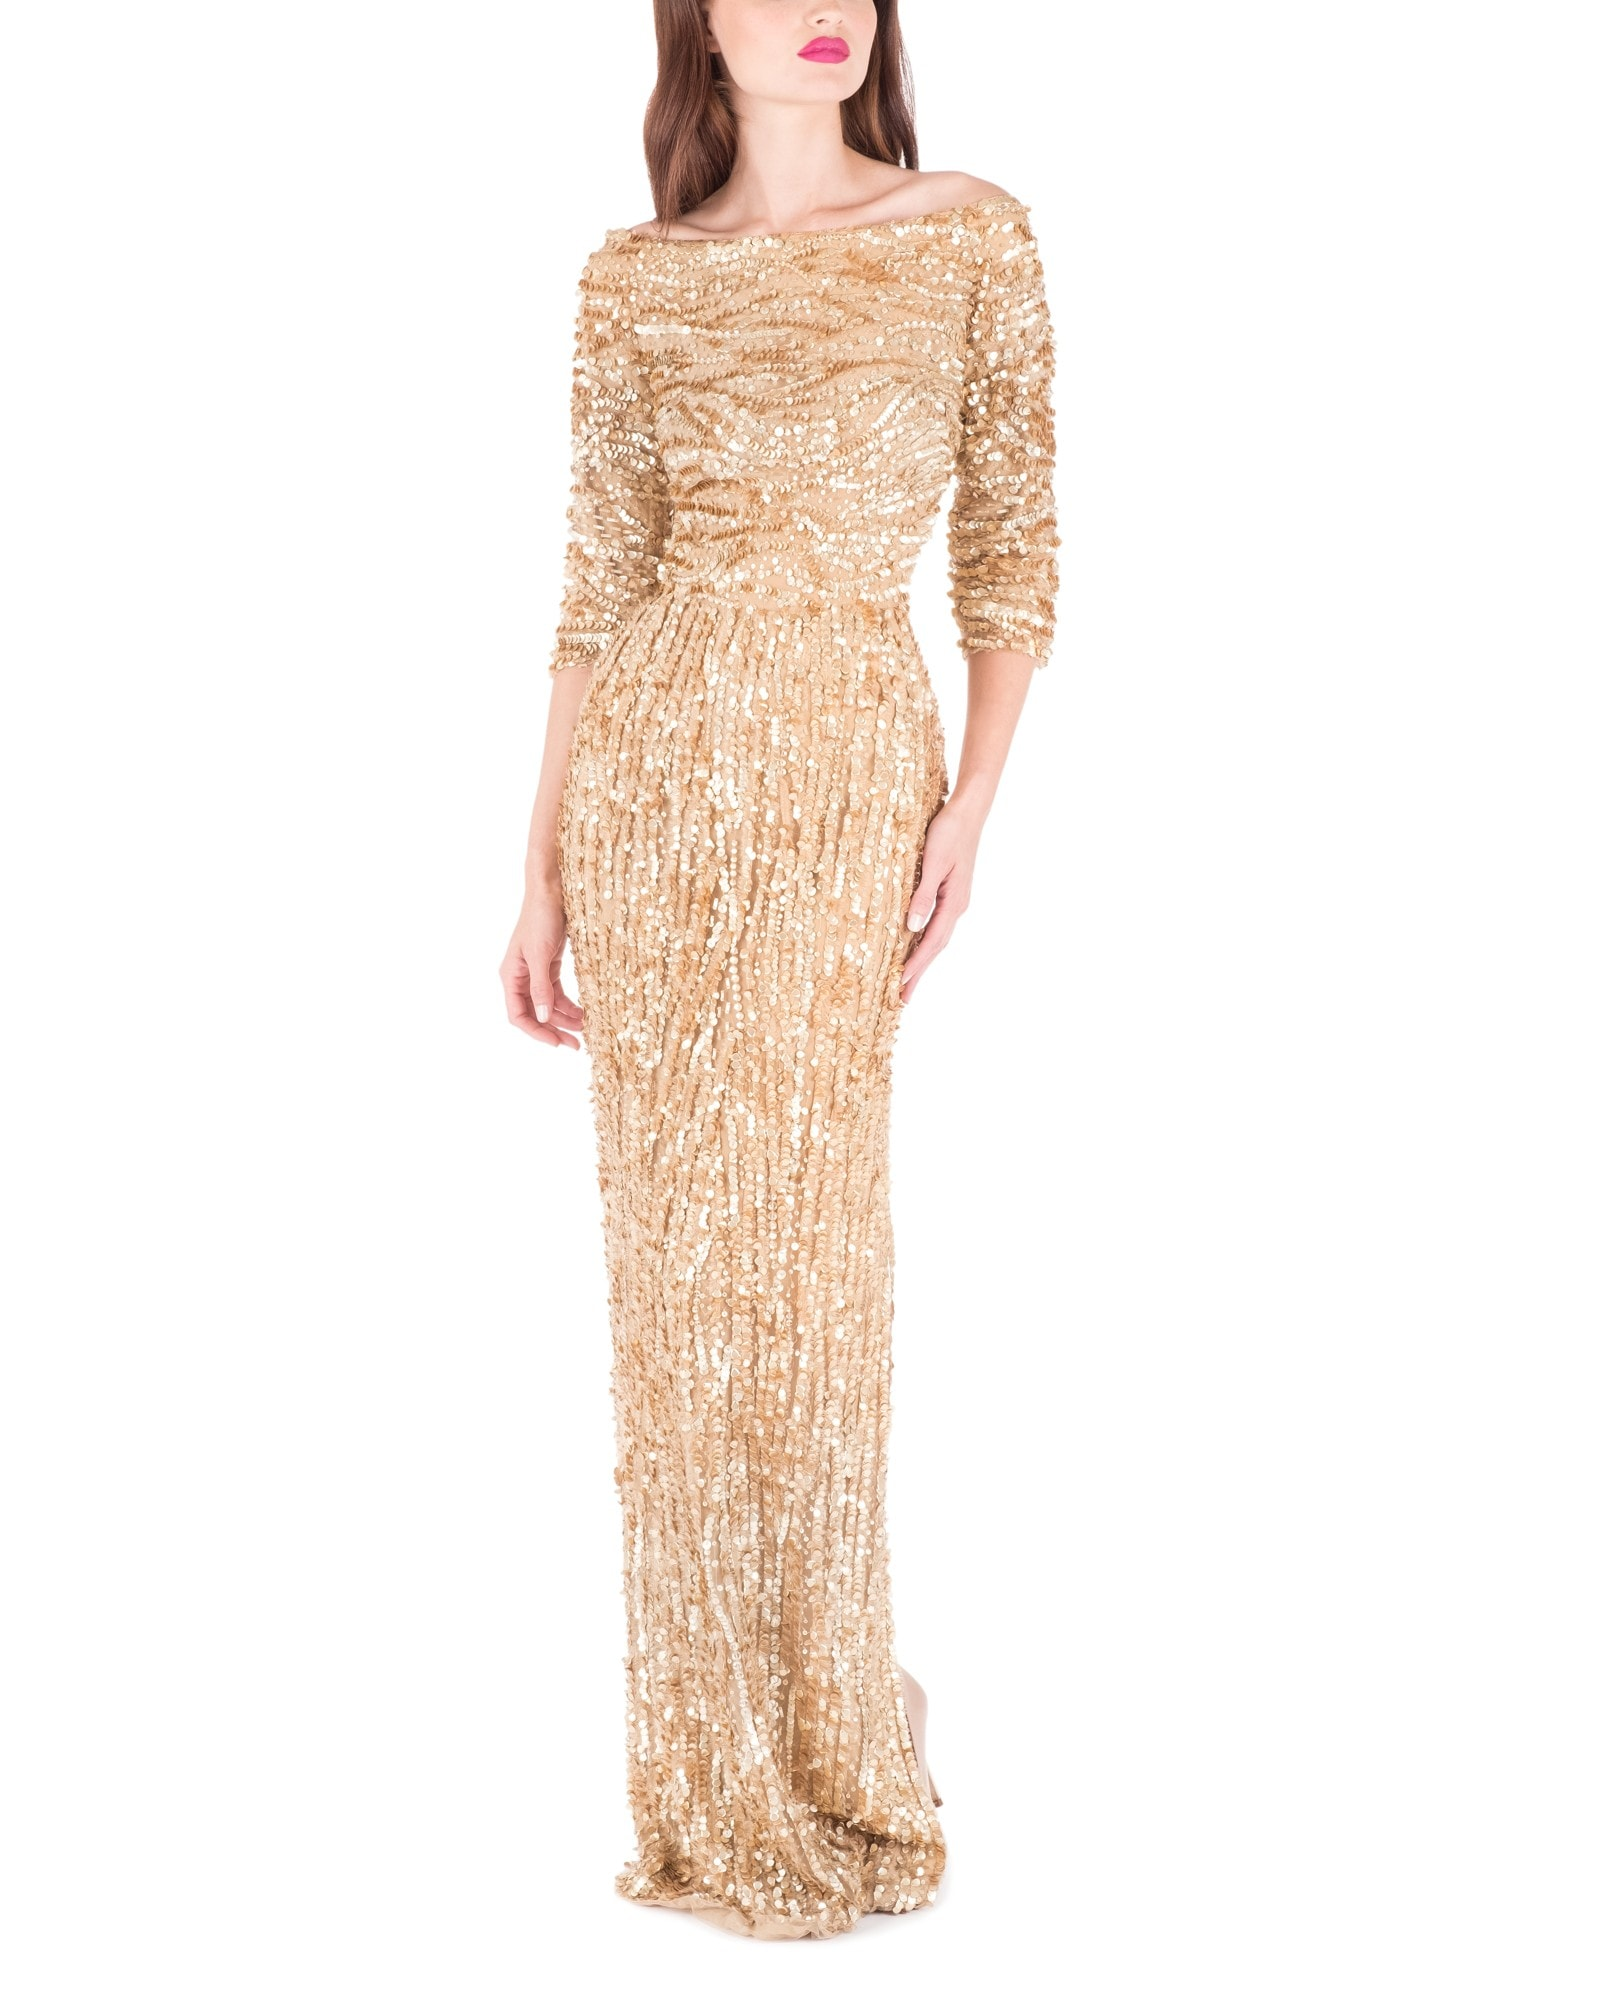 ANTIQUE GOLD OFF SHOULDER GOWN